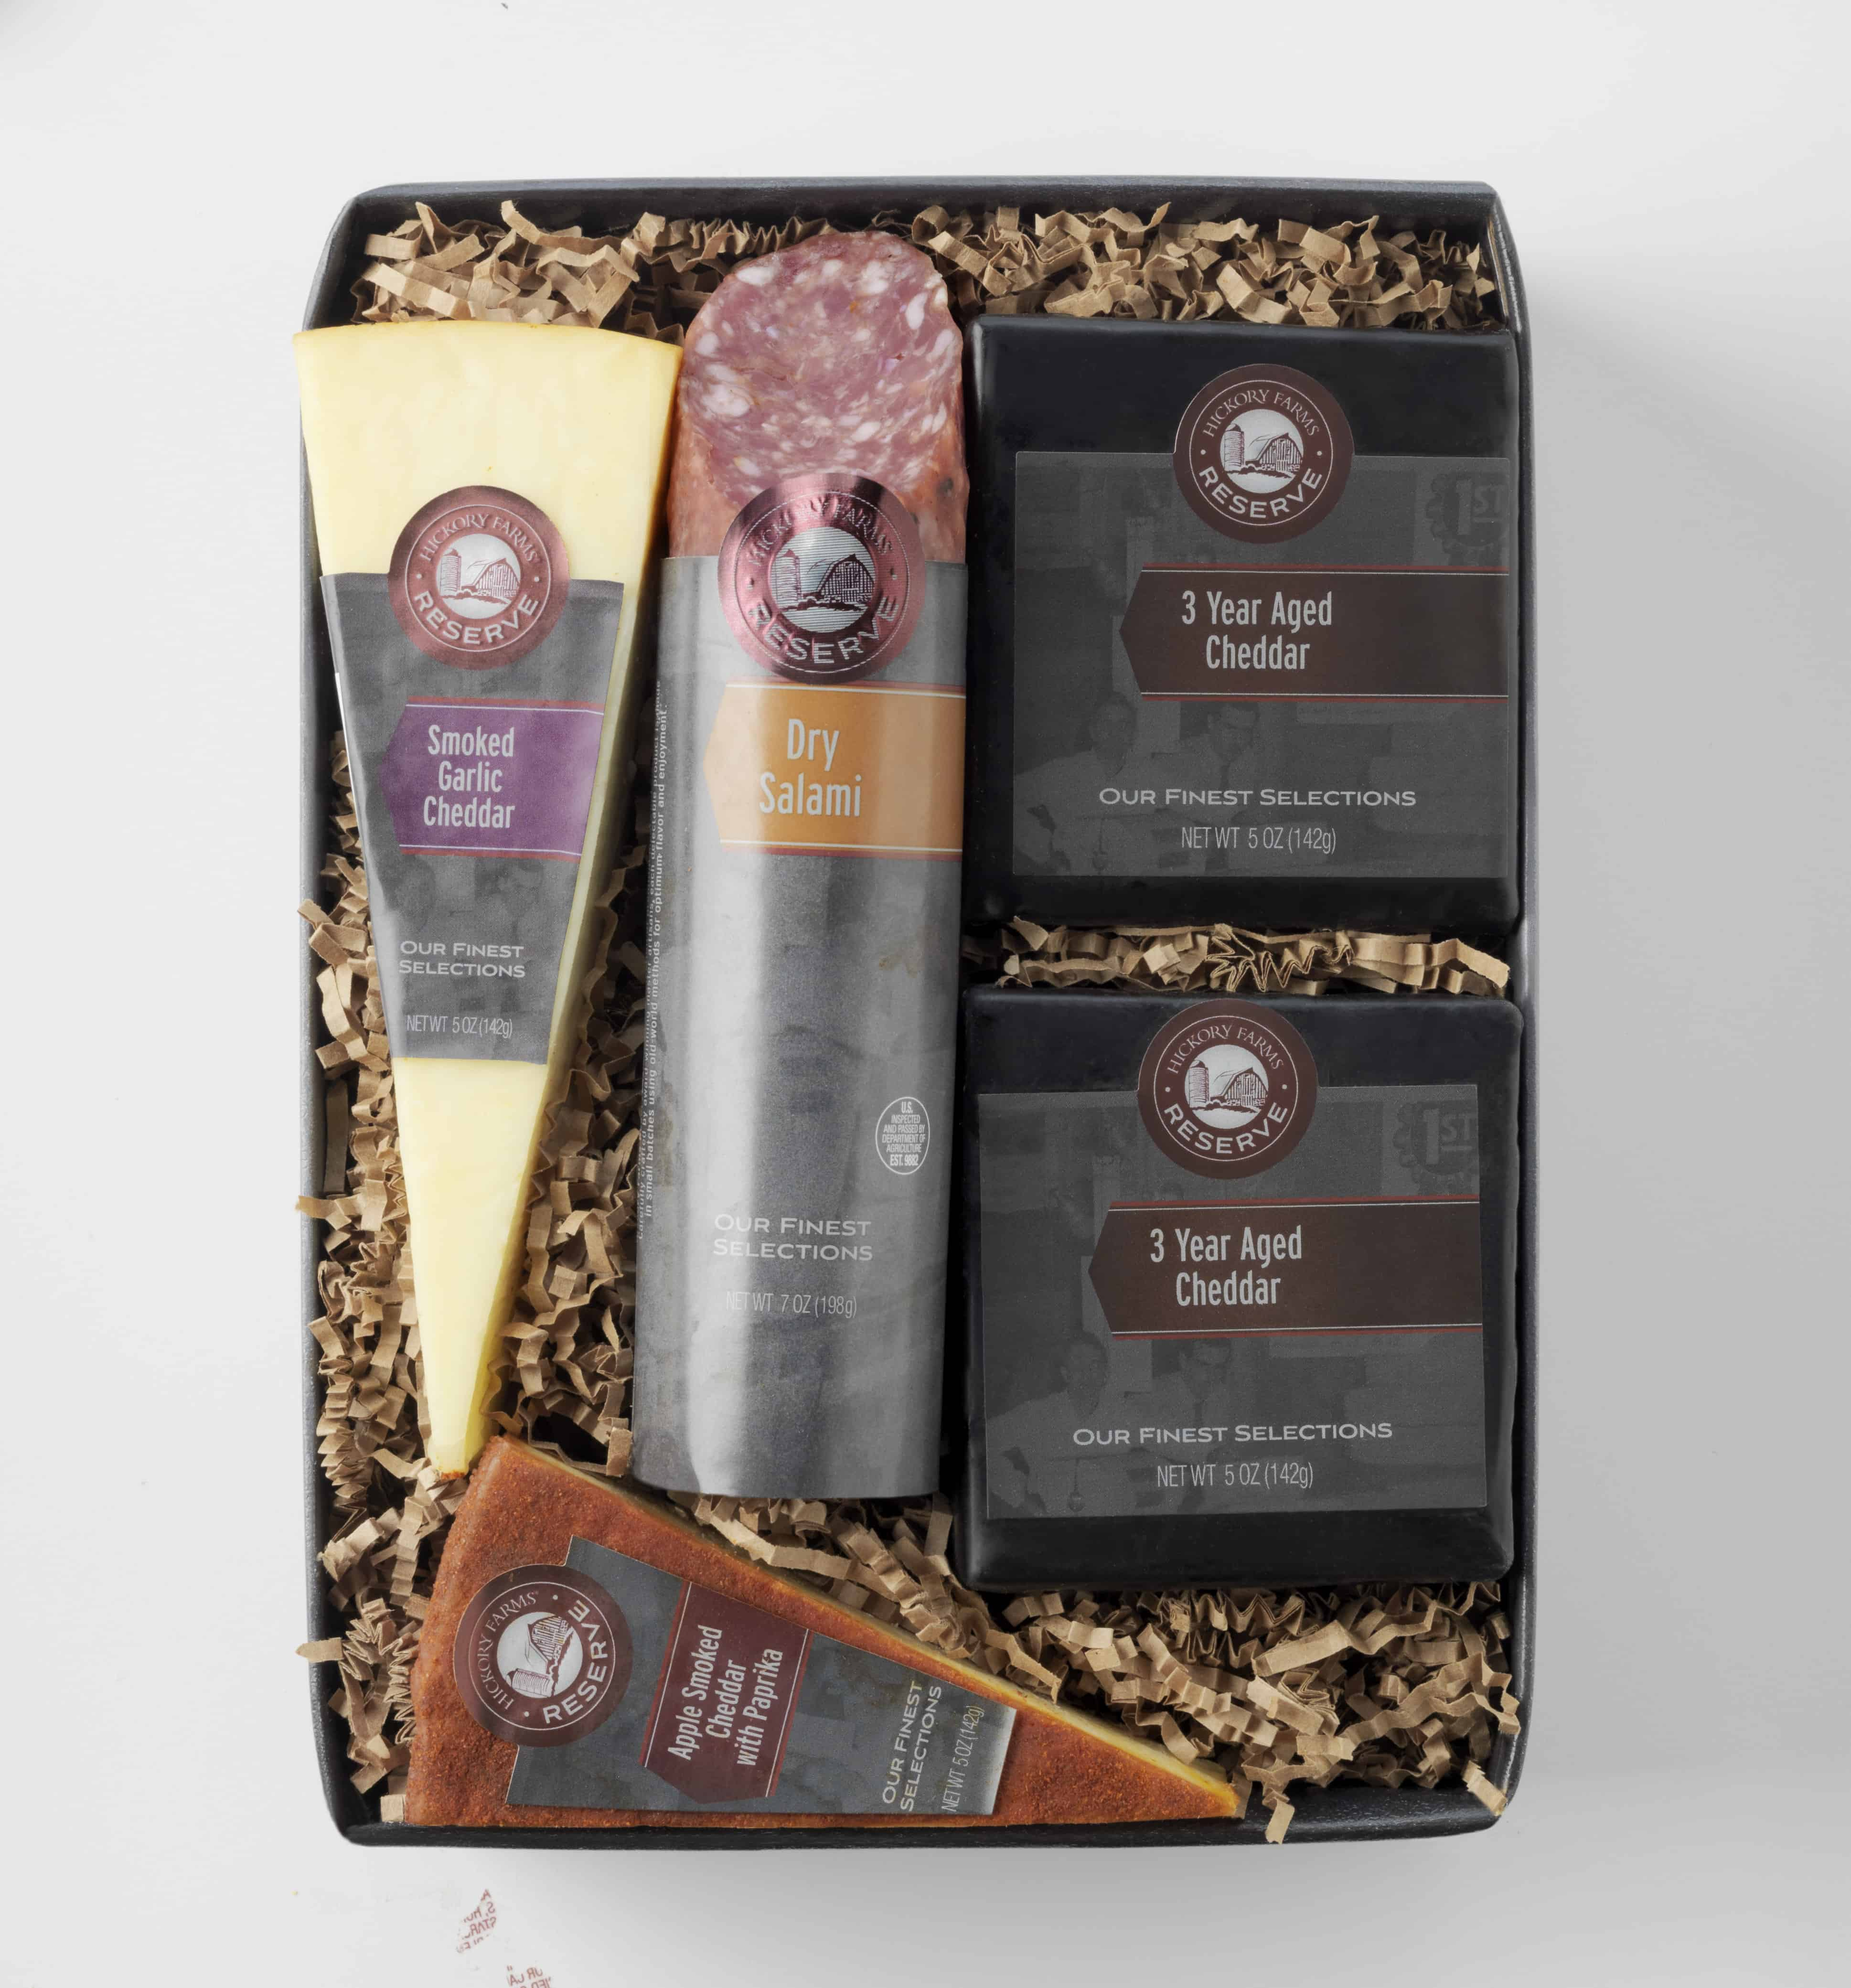 Hickory Farms Makes Great Gifts For Hard To Buy For People! - Must ...